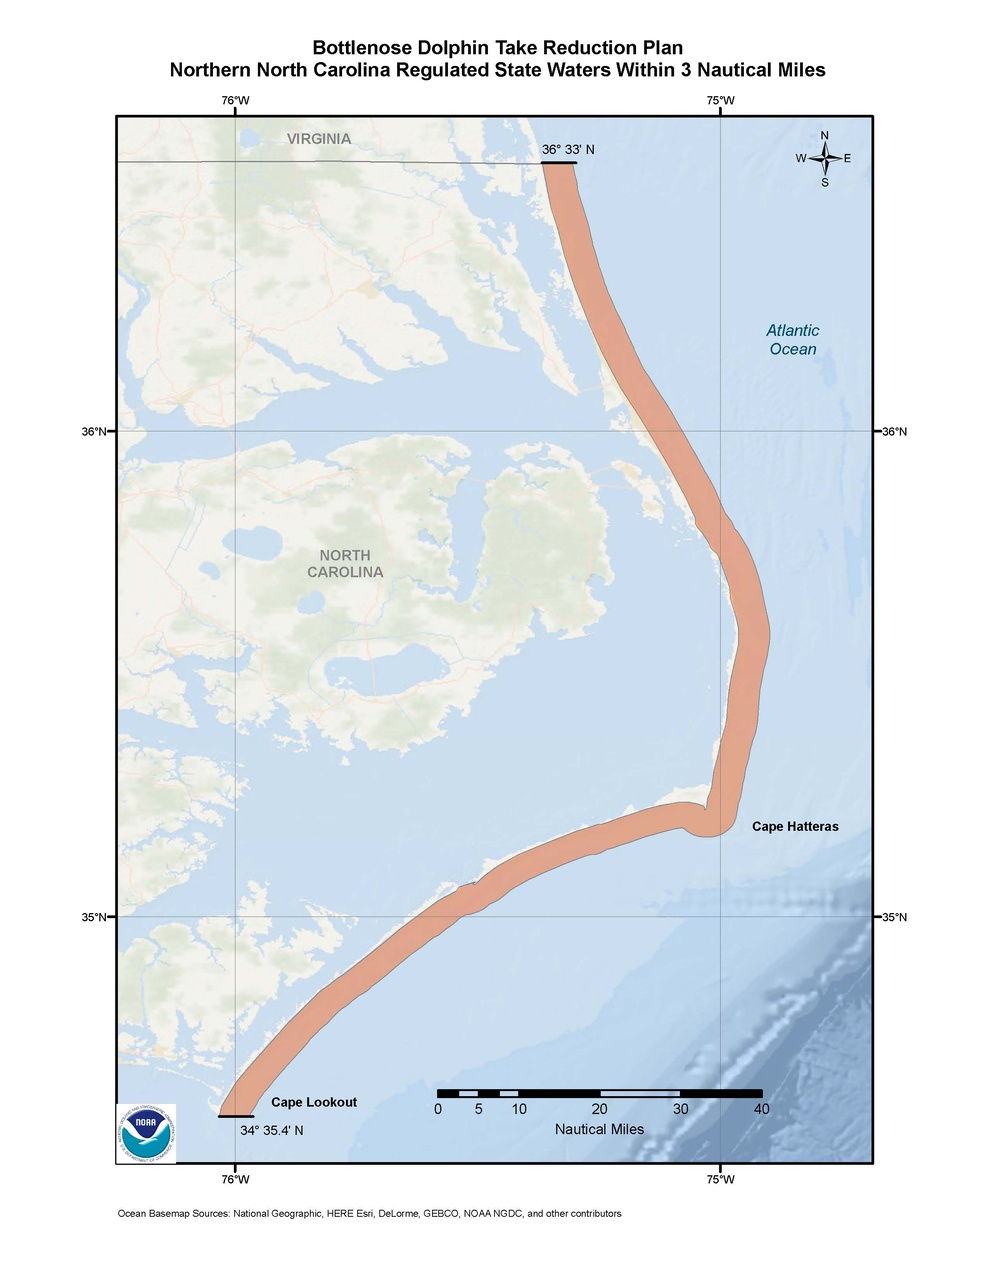 This is a map of the Bottlenose Dolphin Take Reduction Plan for northern North Carolina.